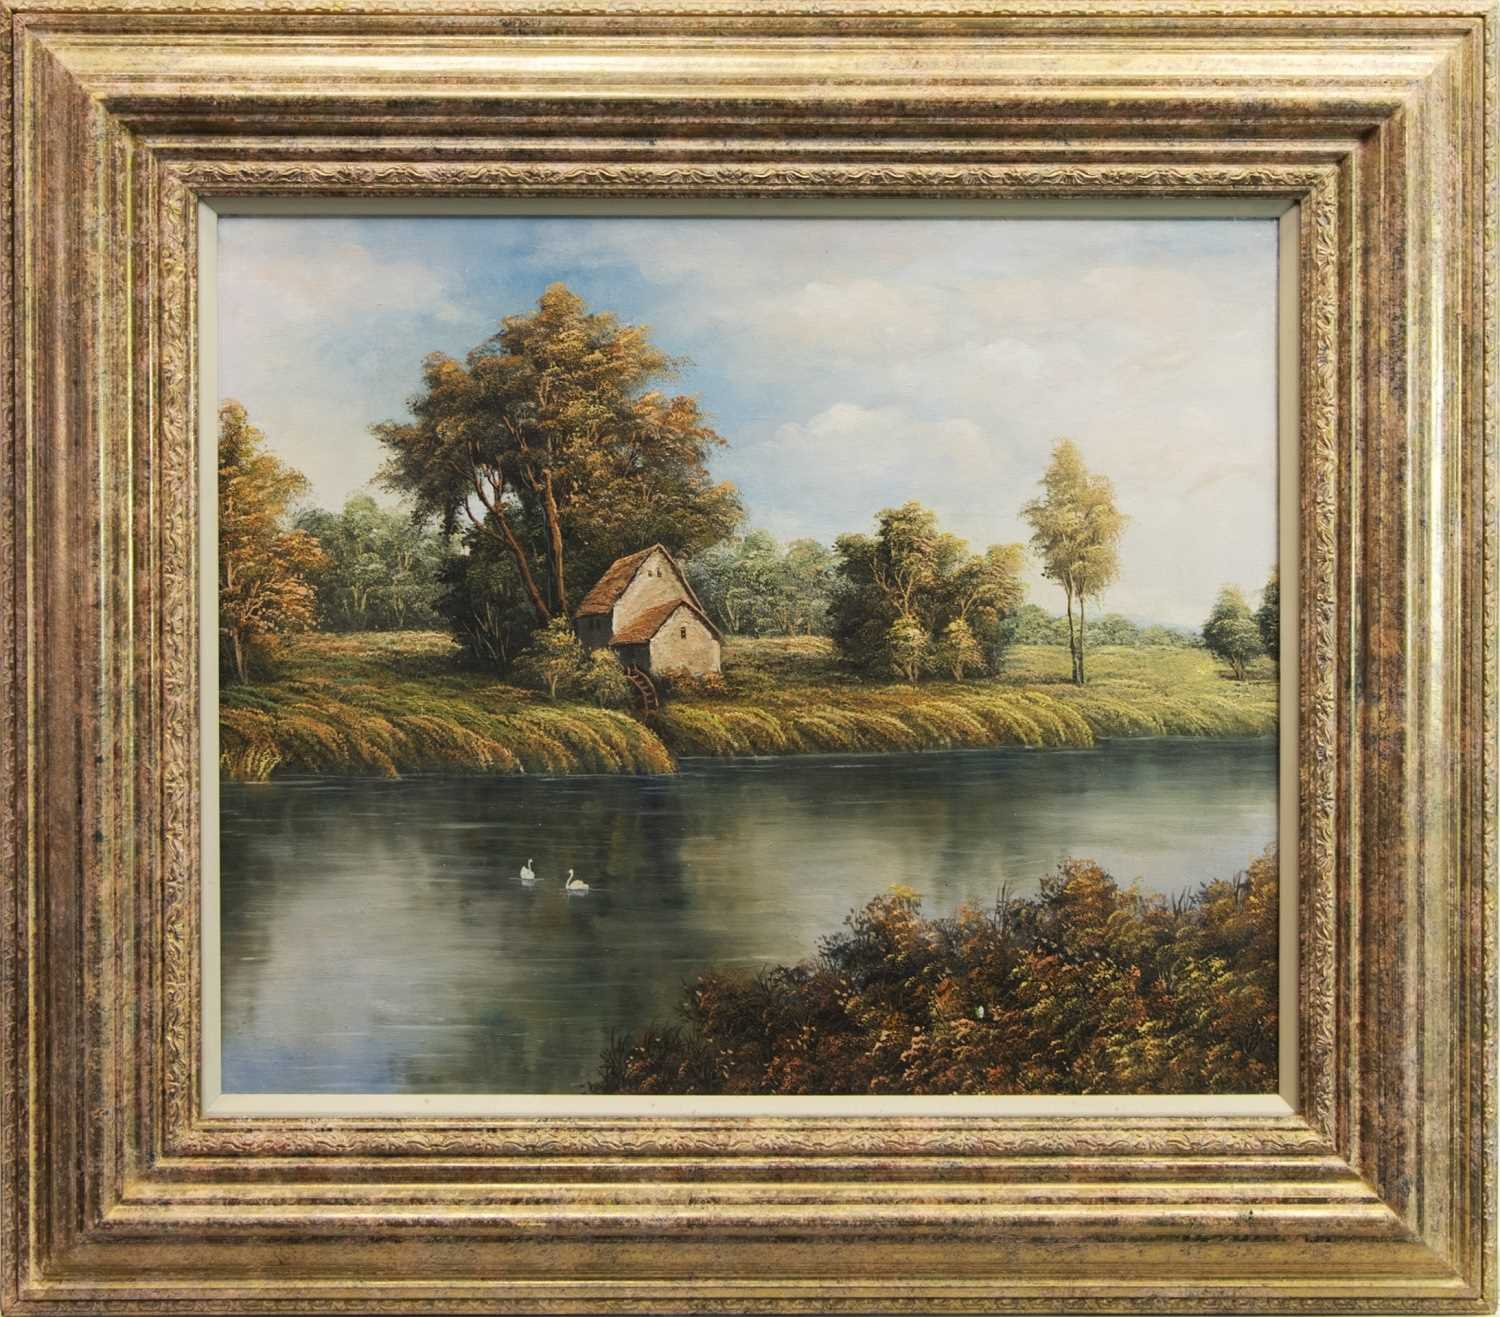 Lot 47 - SWANS ON THE RIVER, AN OIL ON CANVAS